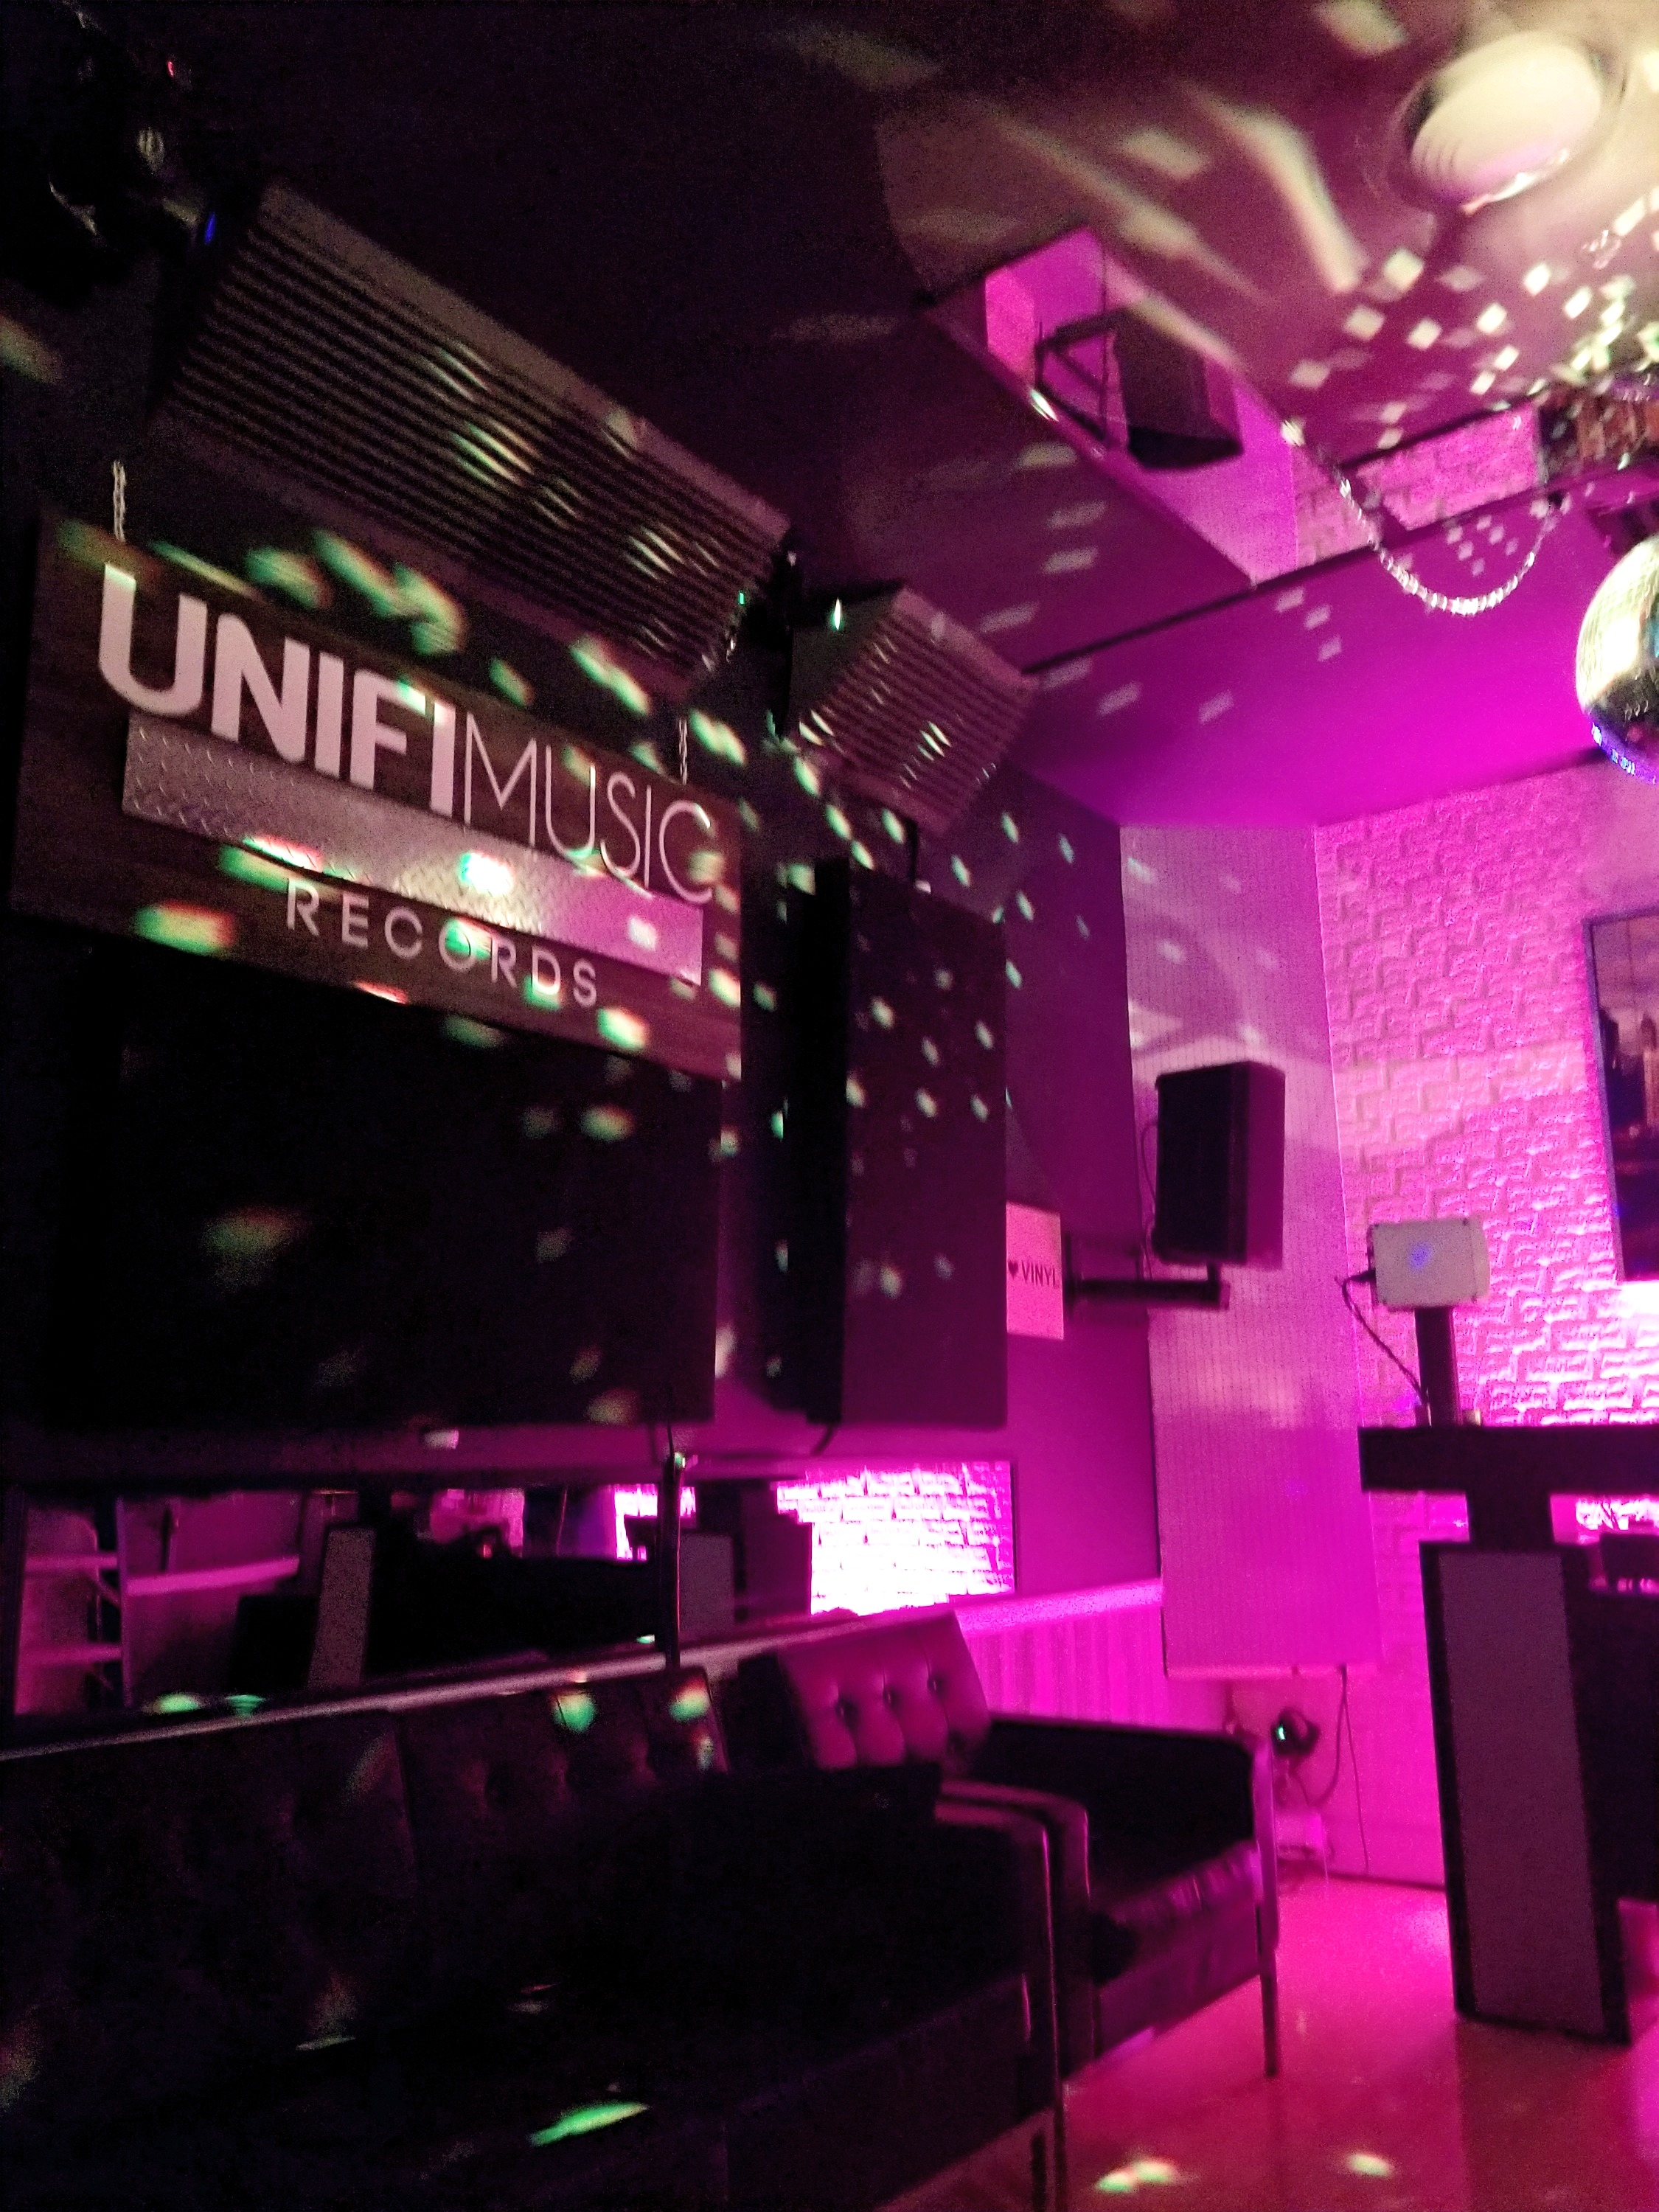 Unifi Music Records